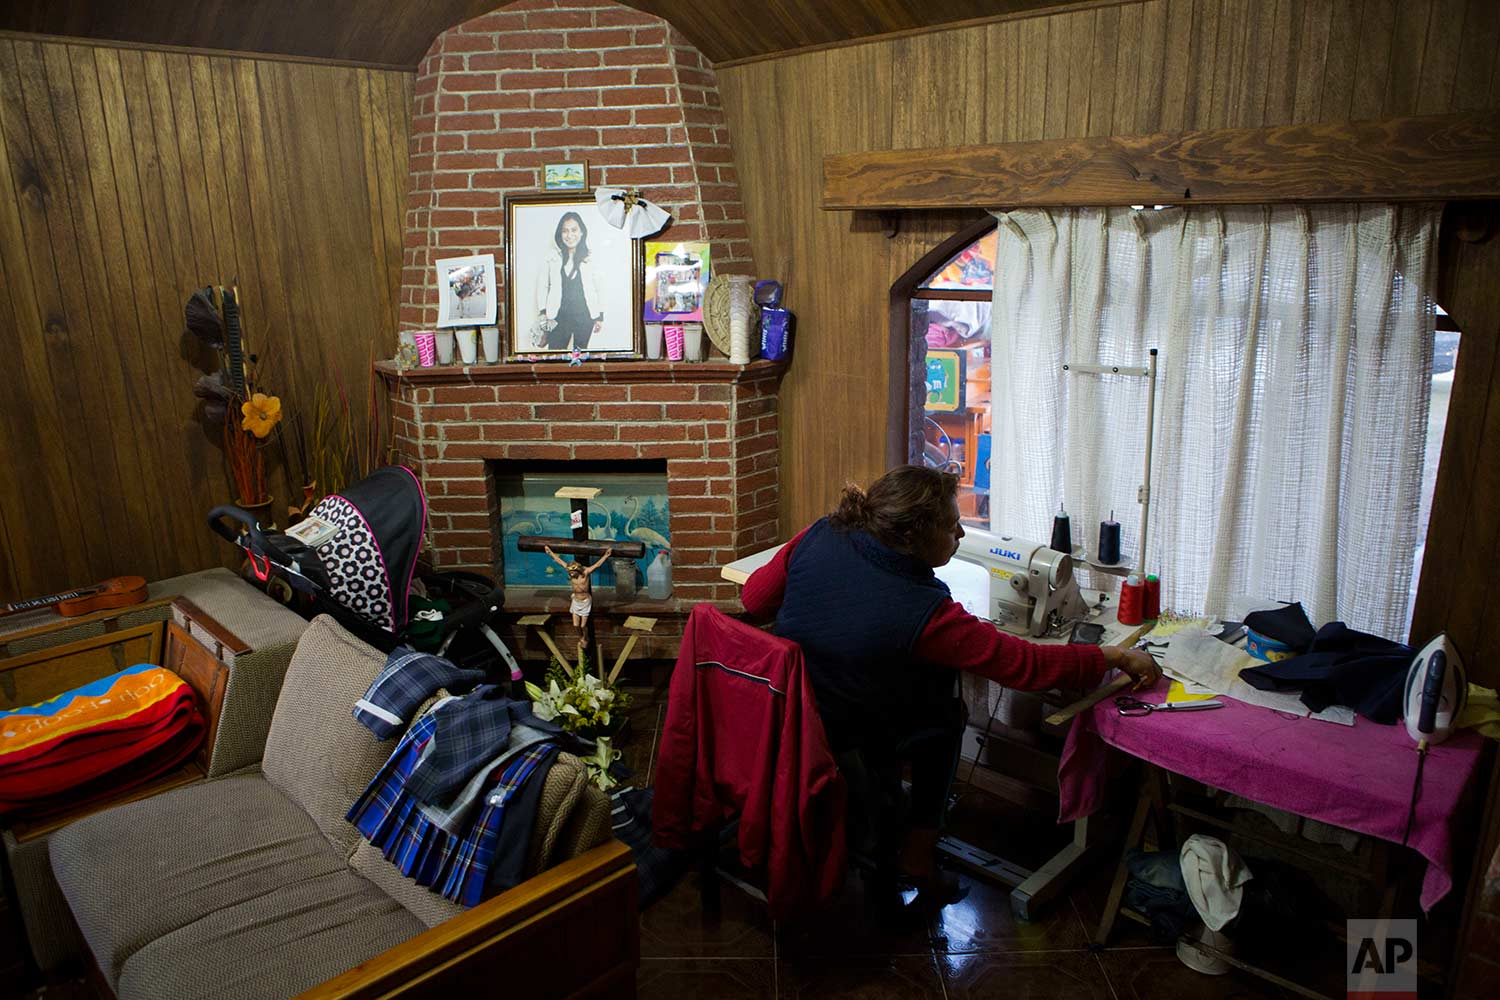 In this Aug. 23, 2017 photo, Juana Pedraza sits next to a small altar in honor of her oldest daughter Jessica, who was murdered at age 29, as she sews school uniforms to order at her home in Villa Cuauhtemoc, Mexico state. (AP Photo/Rebecca Blackwell)